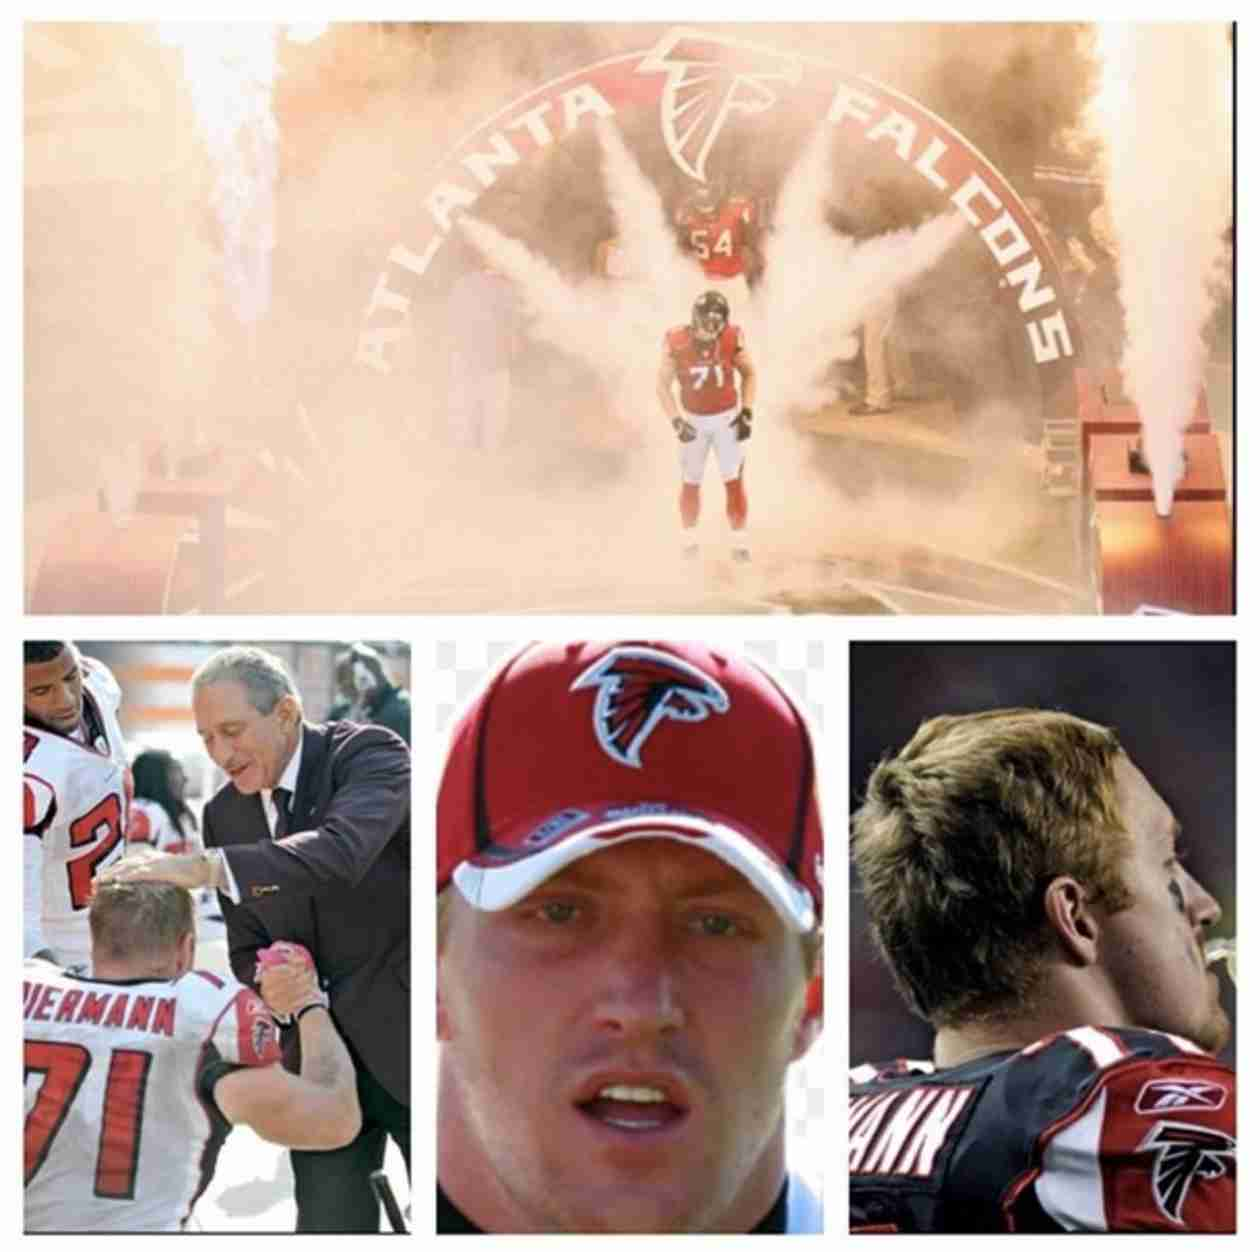 Kroy Biermann Heads to Football Training Camp